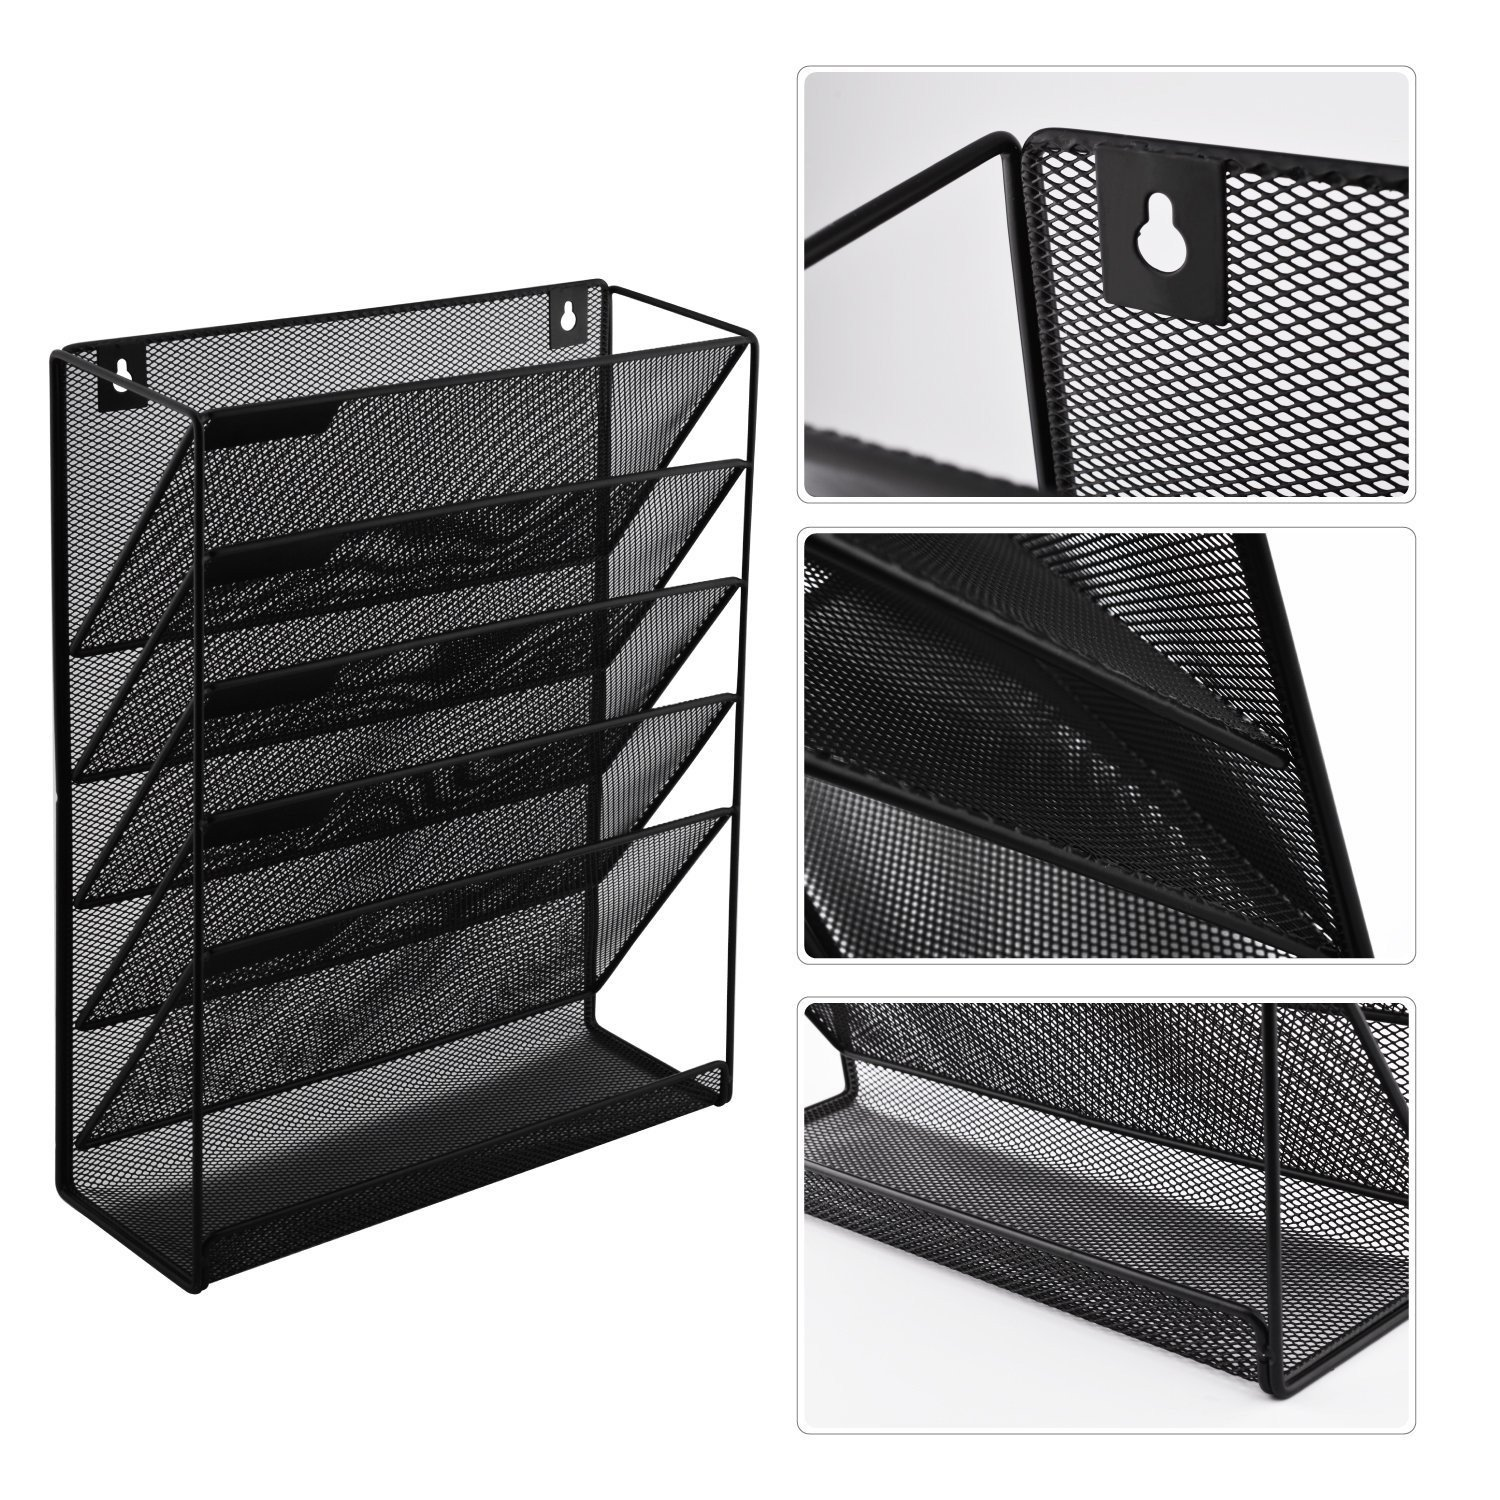 Wall Hanging File Holder Organizer for Office Home, 5-Tier Black Metal- Yuugen Products by Yuugen Products (Image #3)